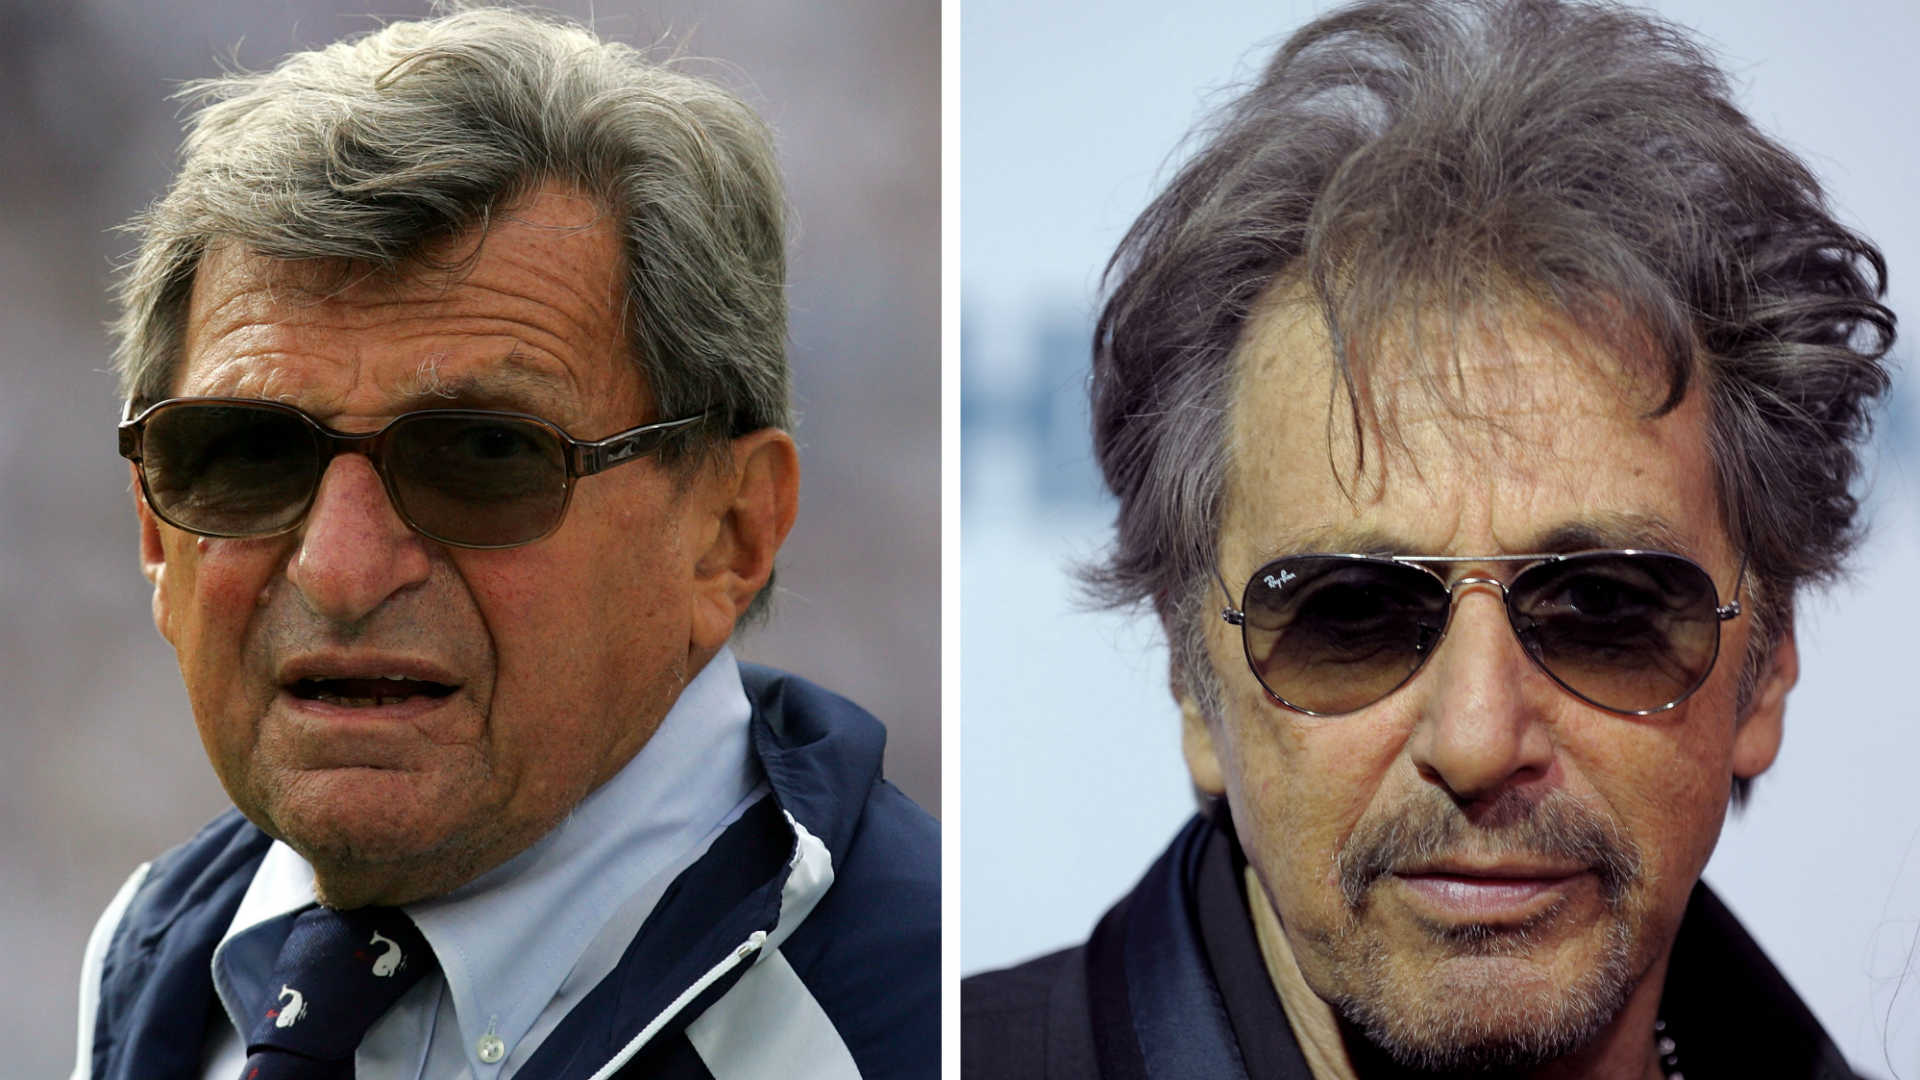 Al Pacino Reportedly Will Play Joe Paterno in Jerry Sandusky HBO Movie